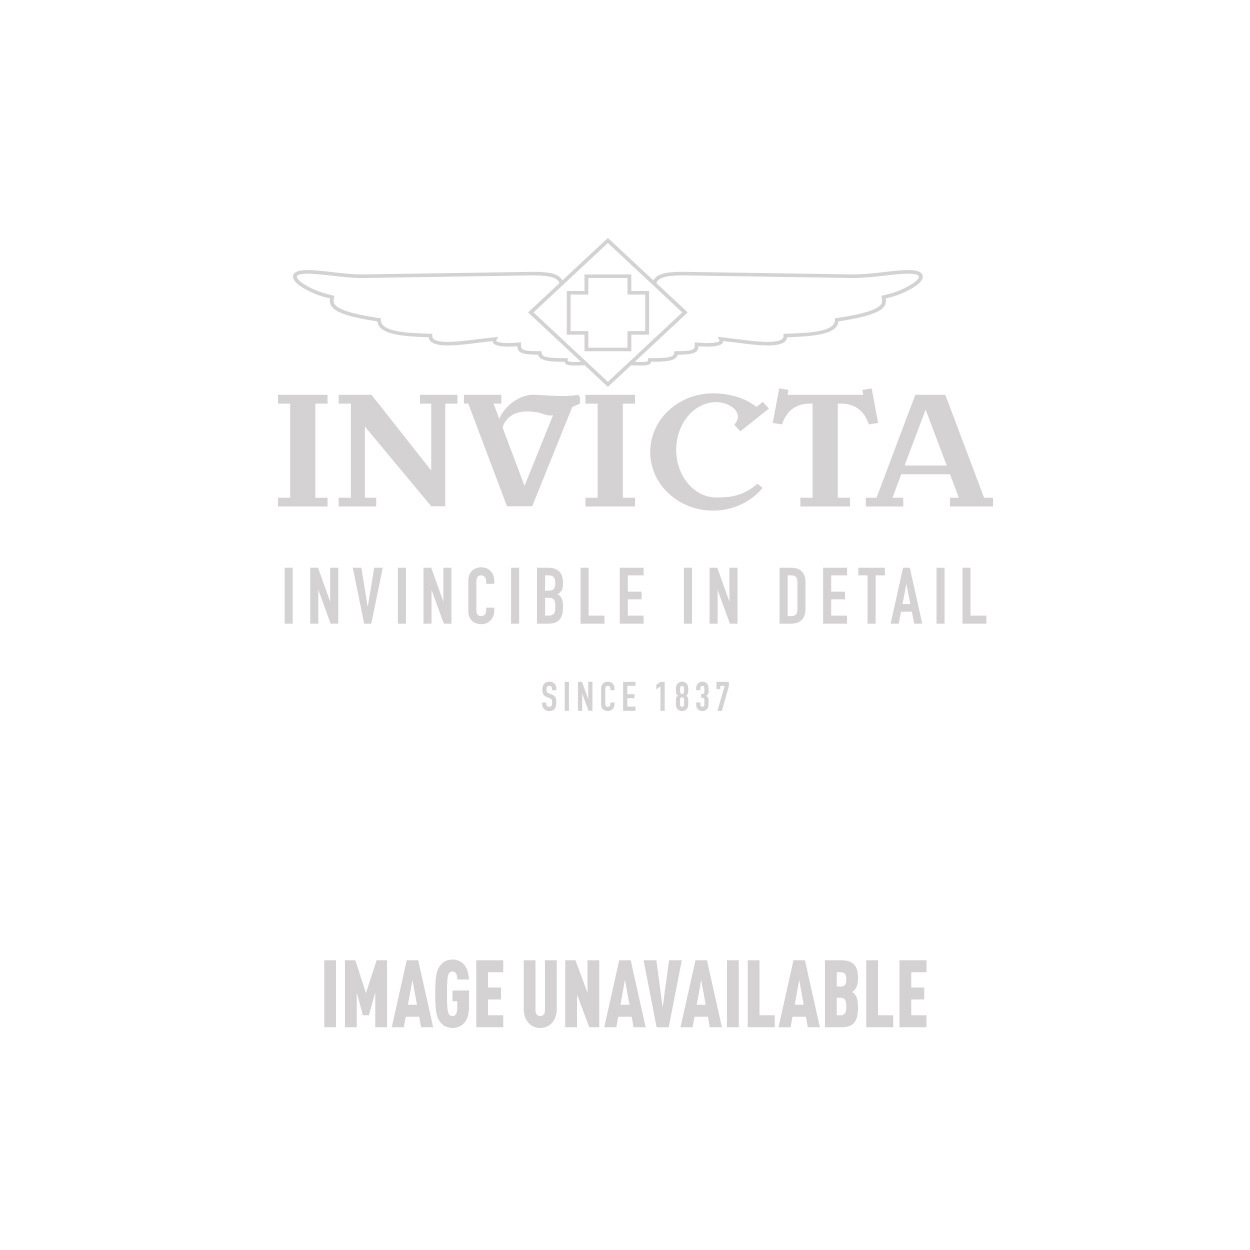 Invicta Aviator Quartz Watch - Gold case with Gold tone Stainless Steel band - Model 18855